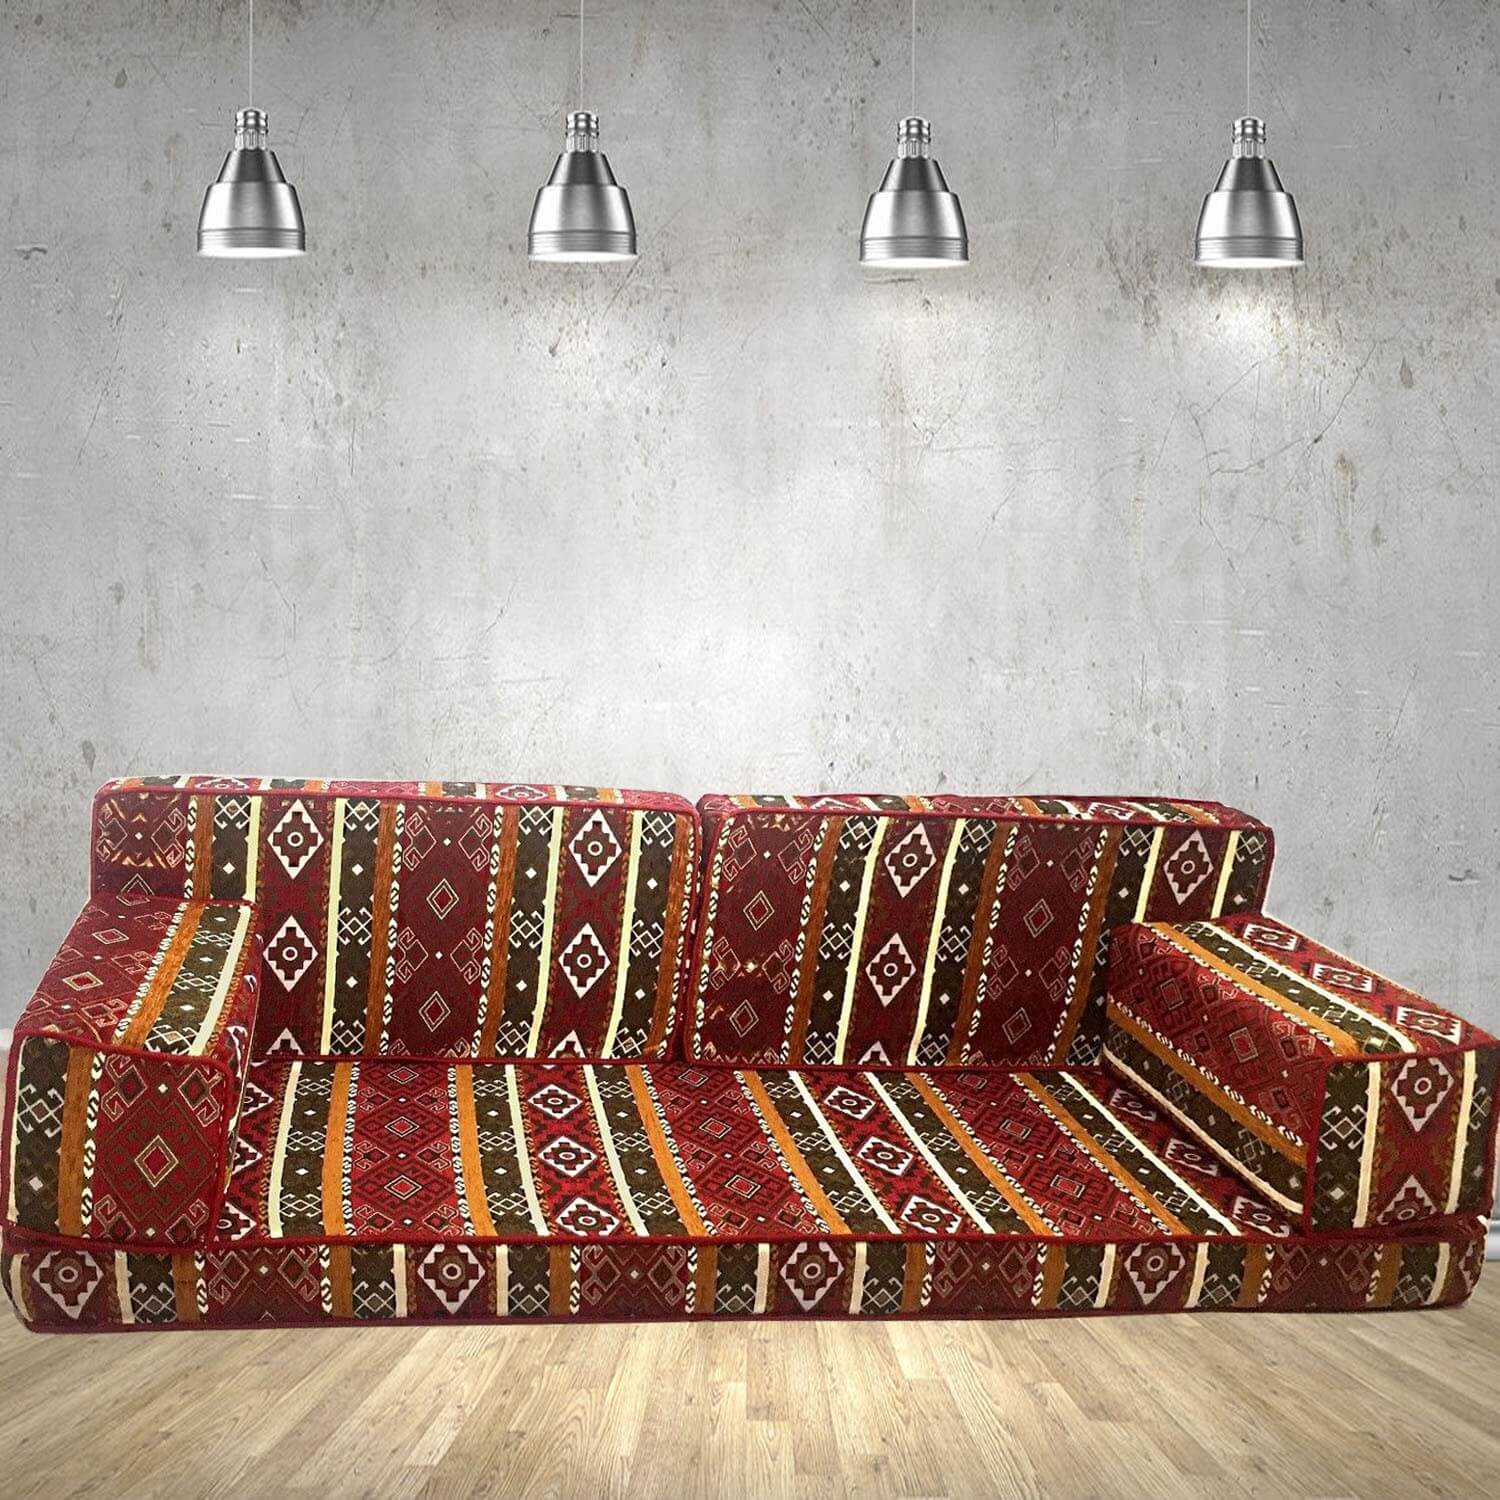 Floor sofa with double back pillows - SHI_FS217